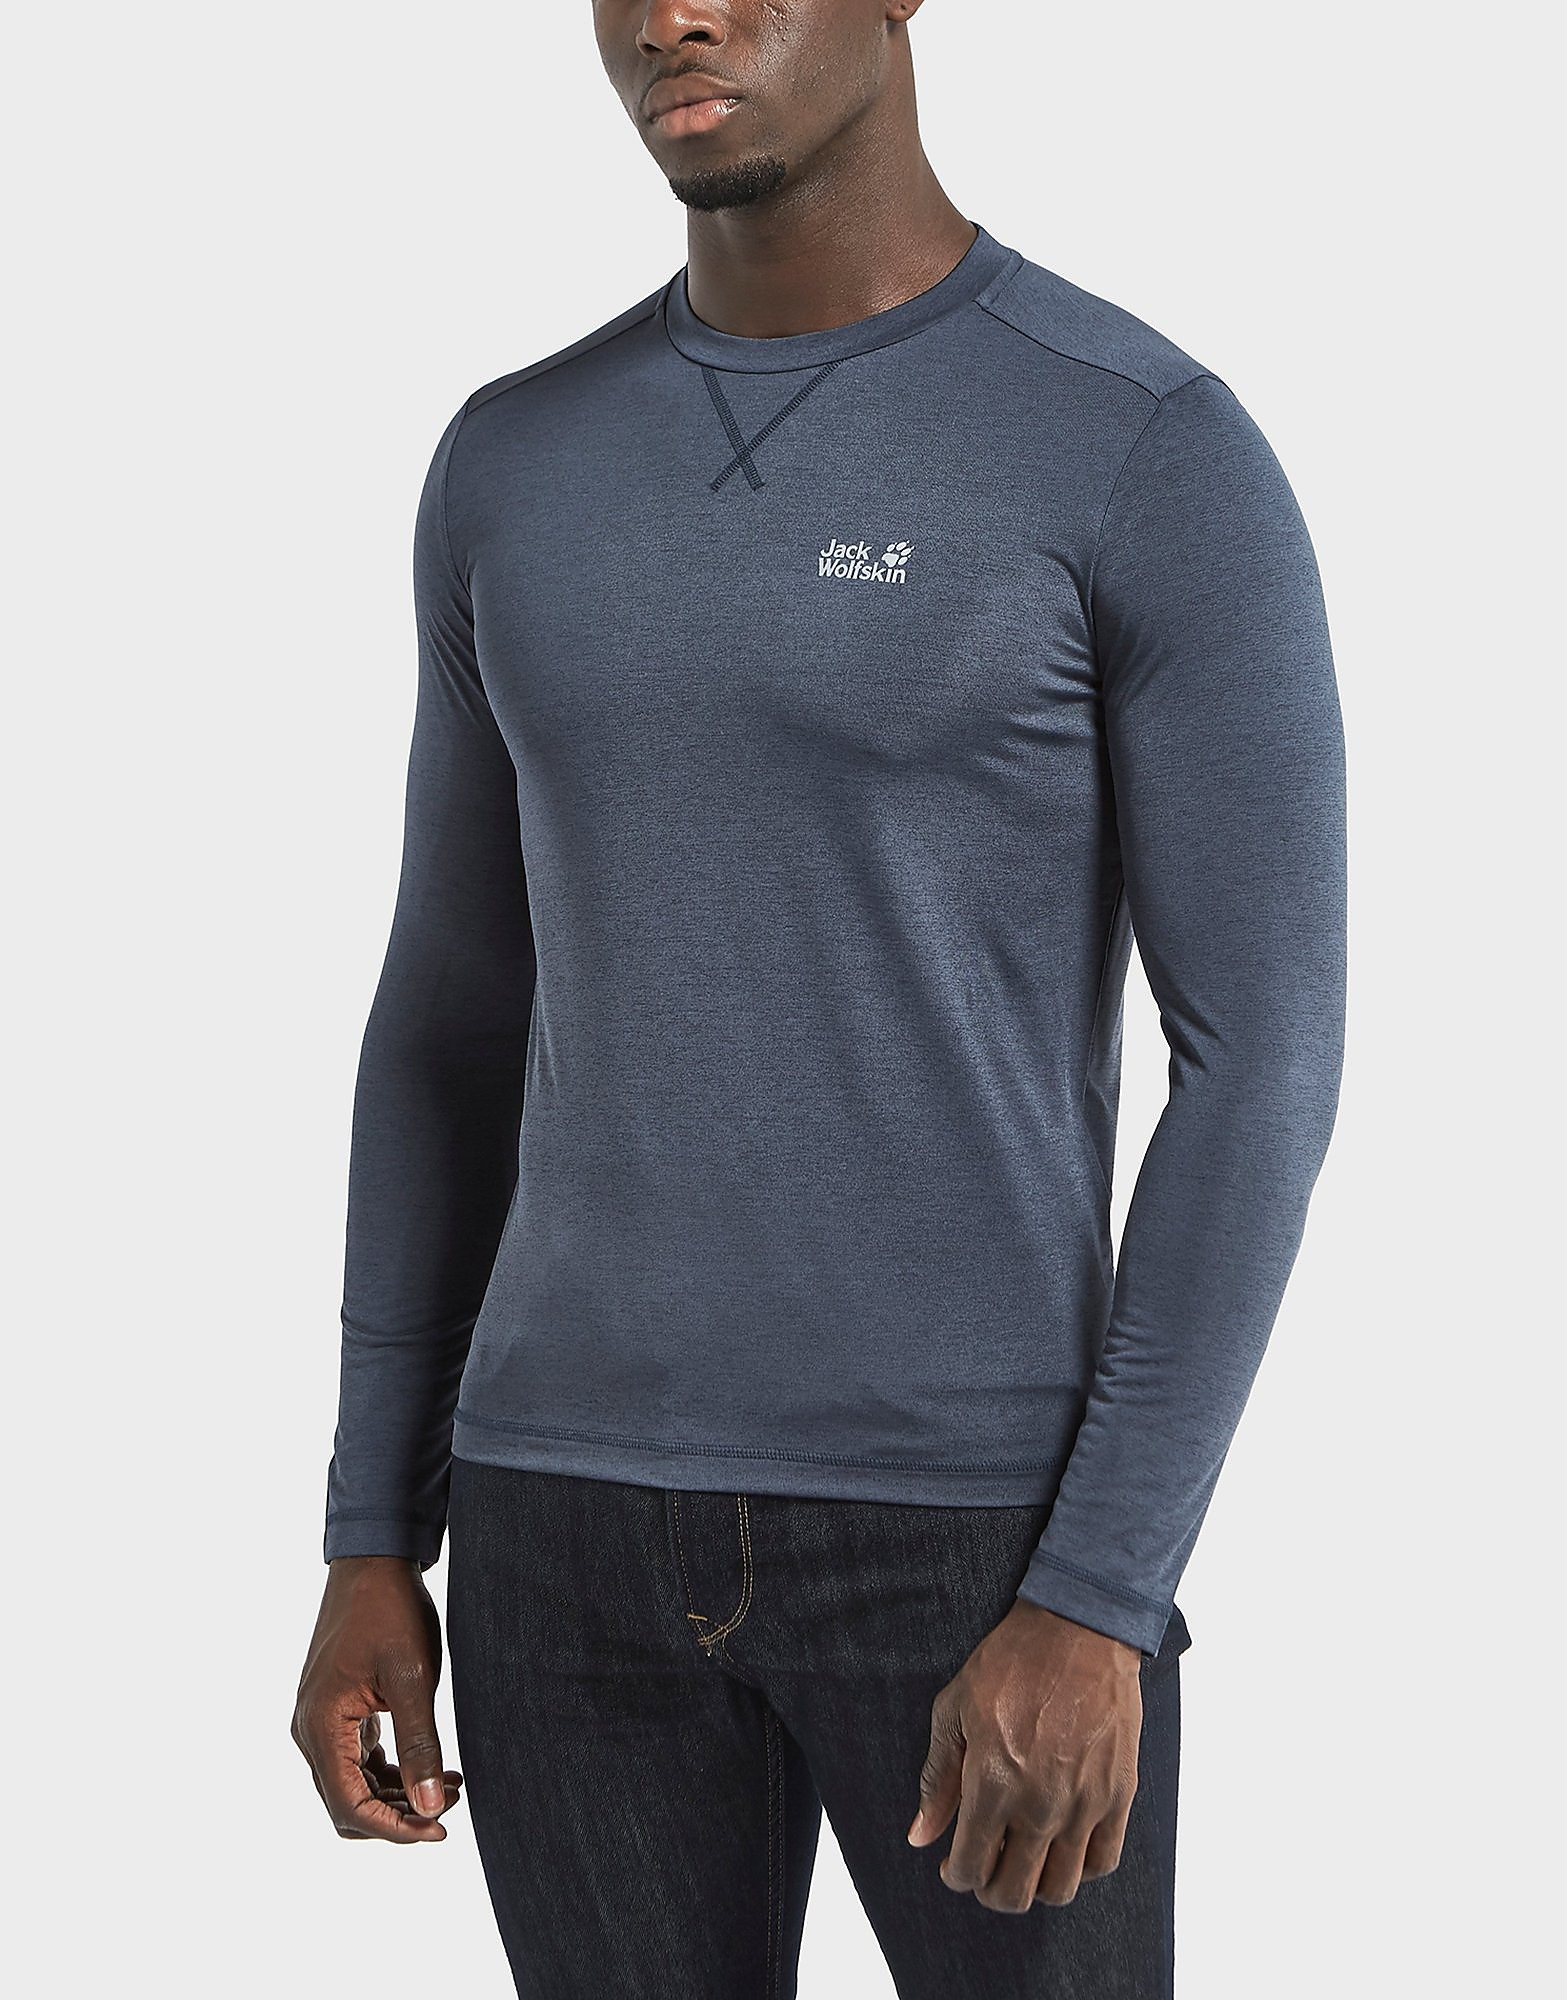 Jack Wolfskin Crosstail Long Sleeve T-Shirt